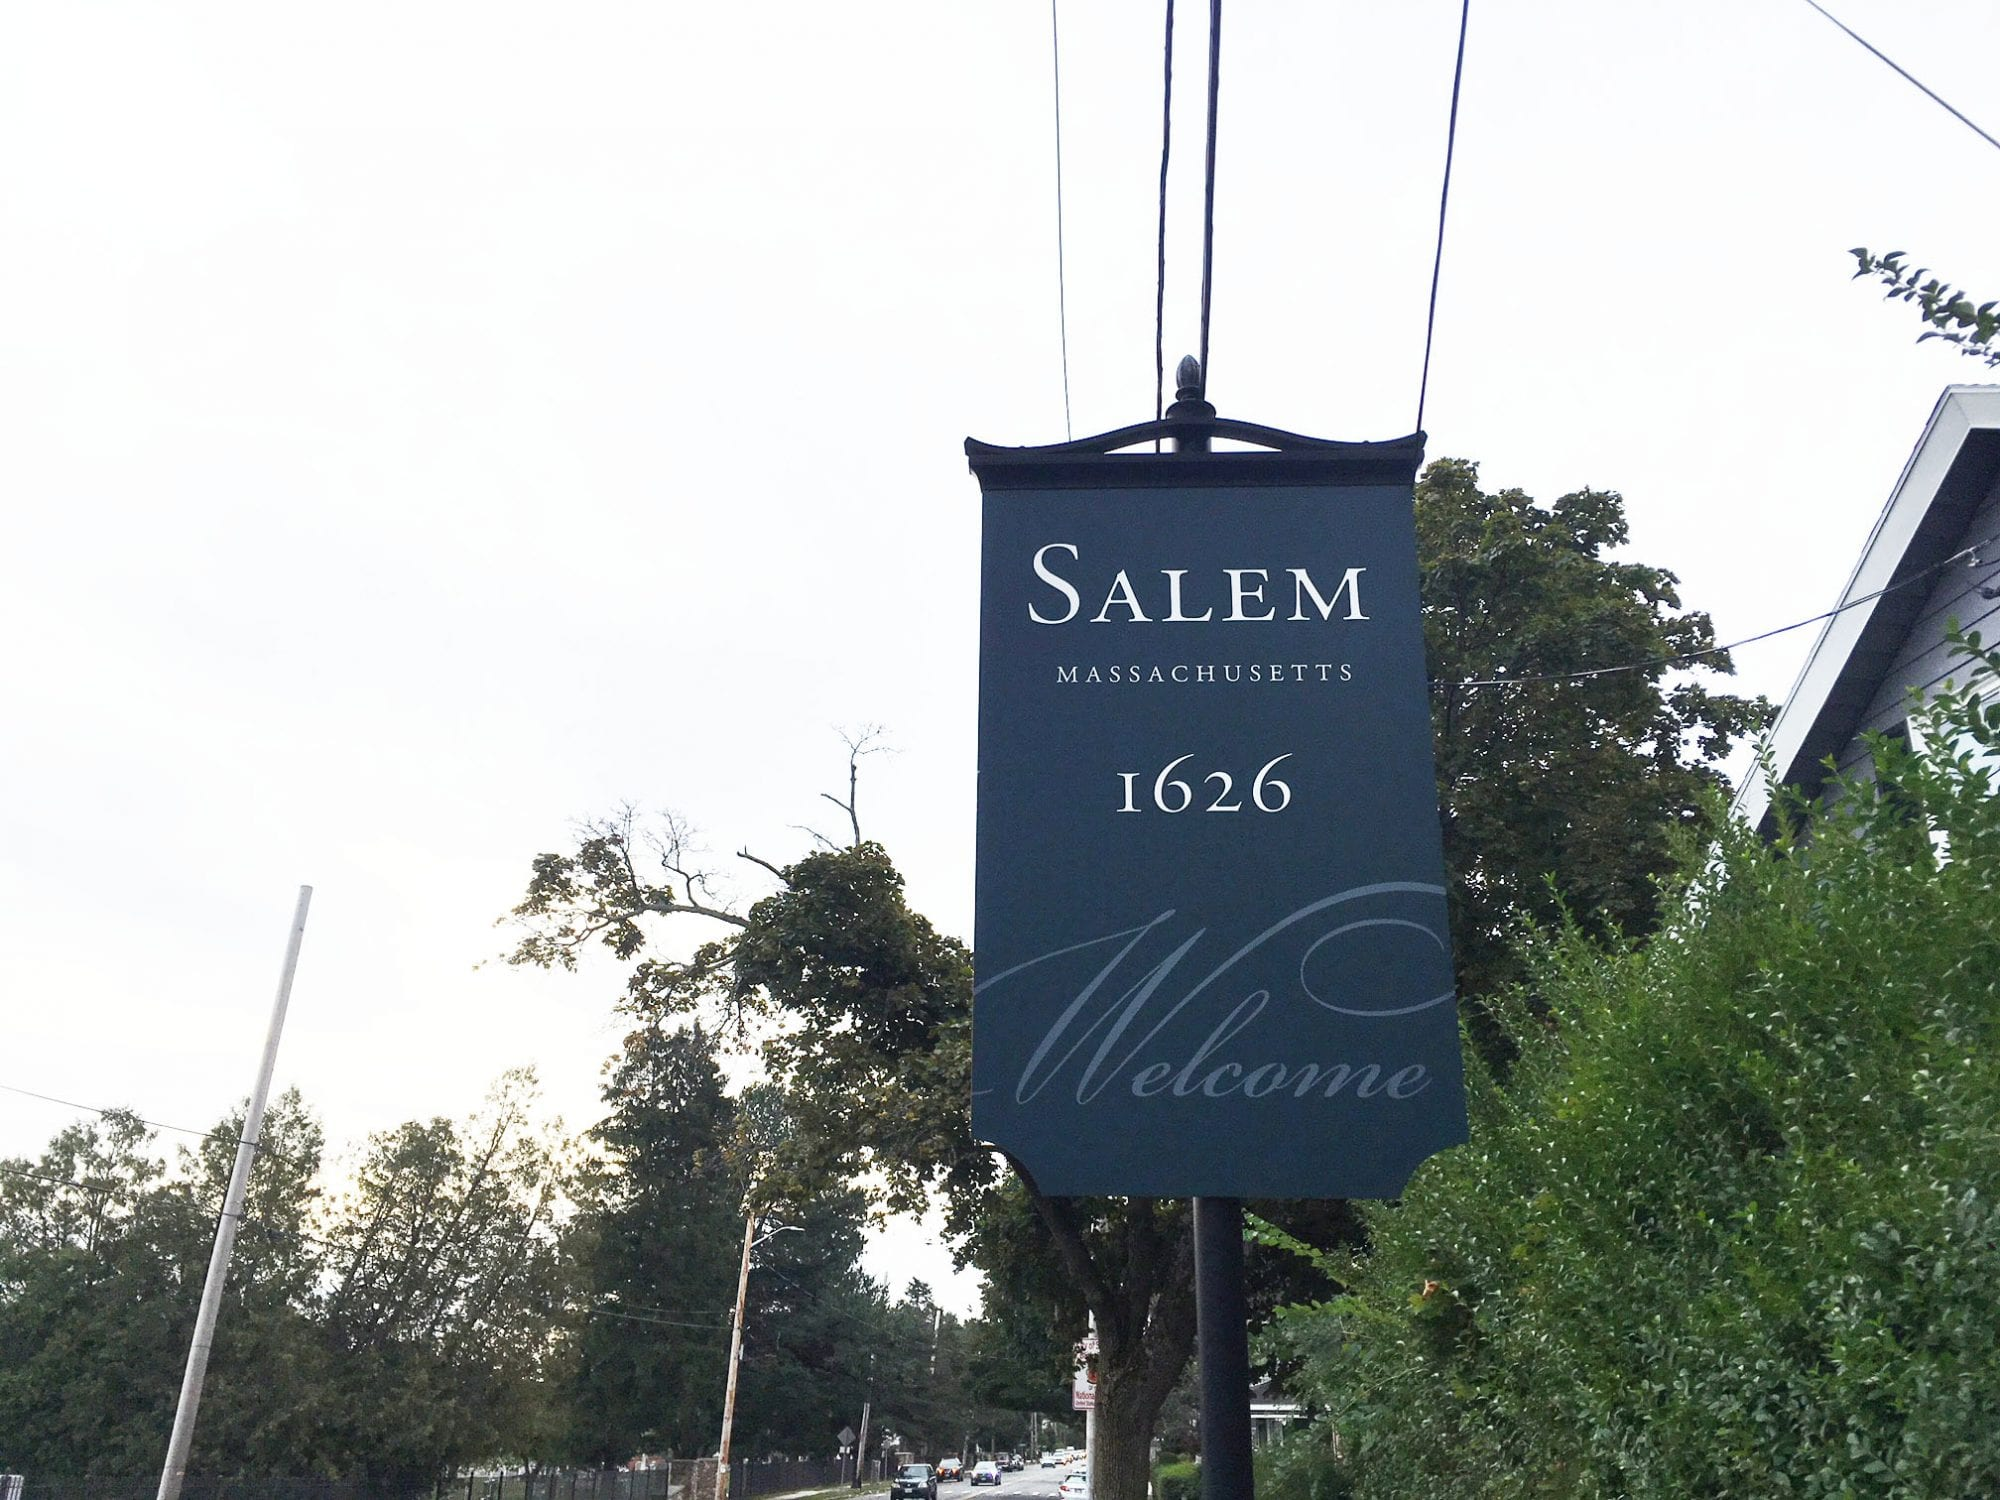 https://salemwitchmuseum.com/wp-content/uploads/2018/09/Welcome-to-Salem.jpg